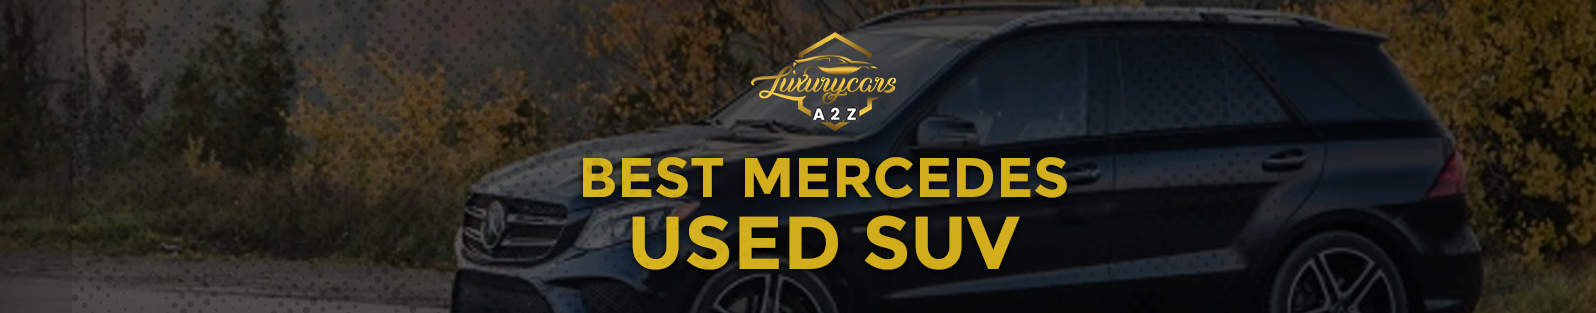 Best Mercedes used SUV